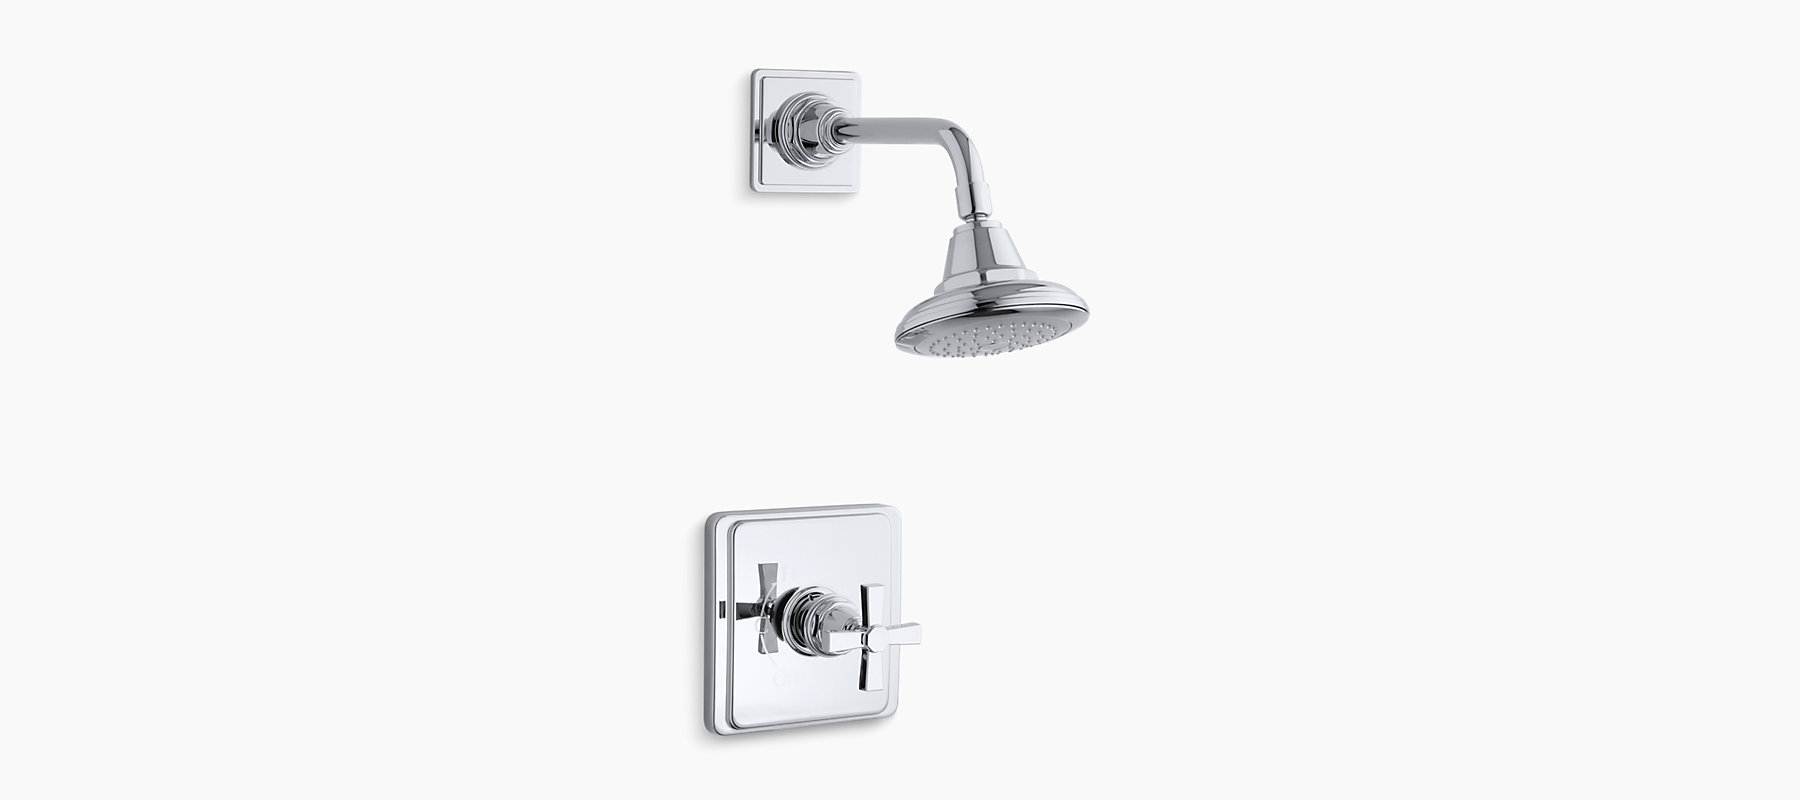 Pinstripe Bath and Shower Faucet Trim with Pure Design | K-T13134-3A ...